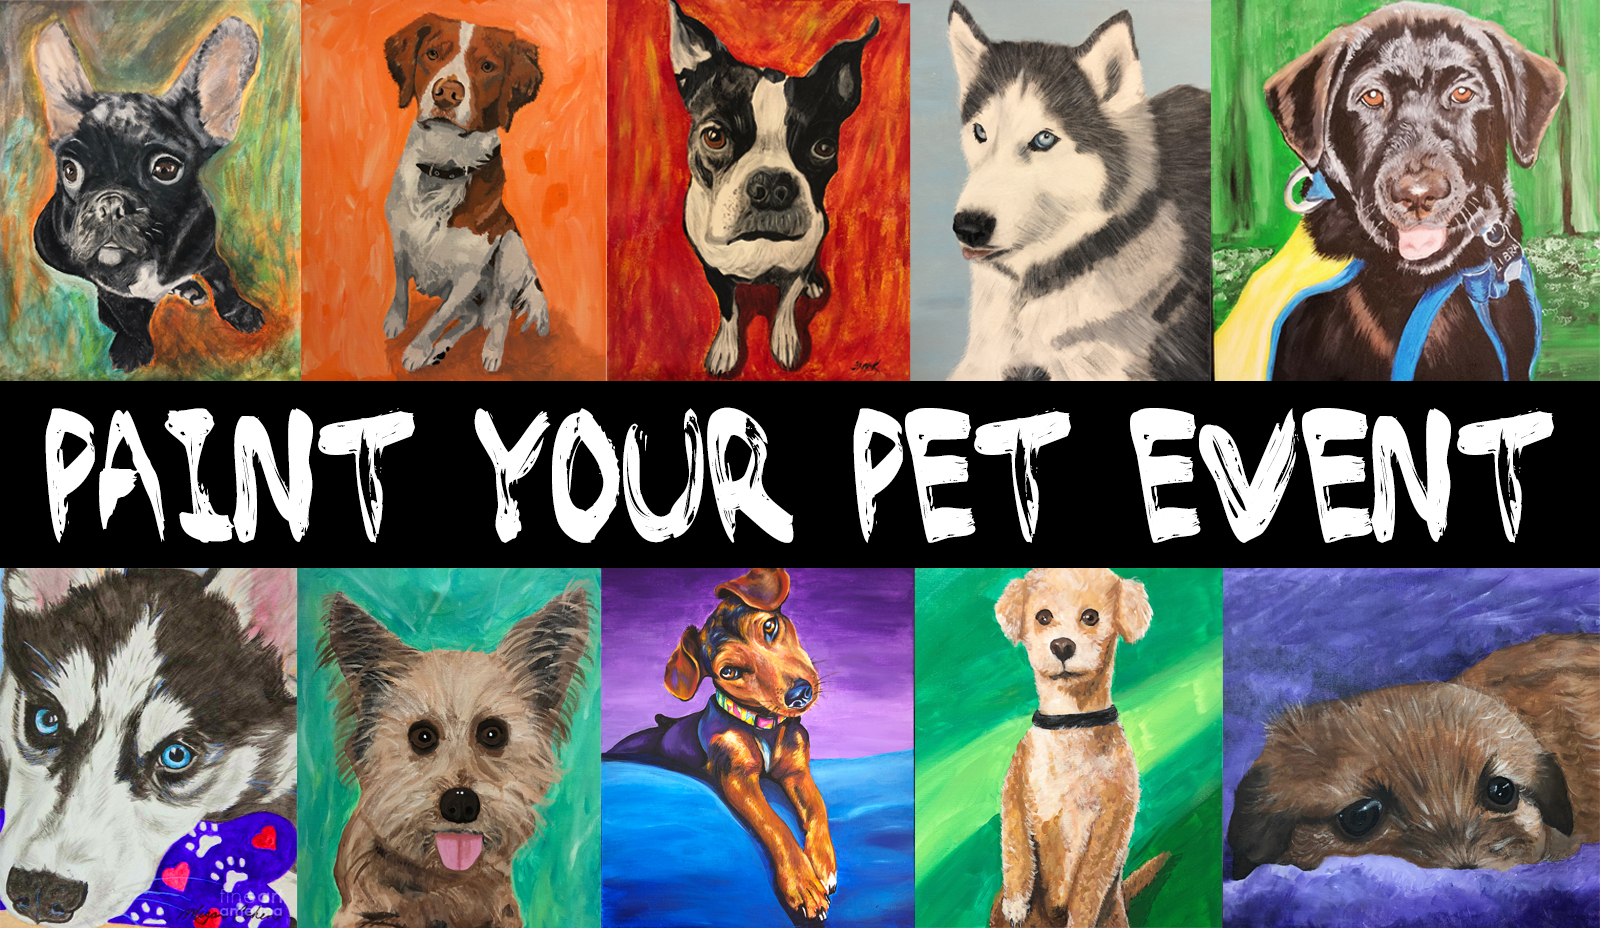 All 10 of these paintings were from Past Paint Your Pet Events. This was everyone's first painting ever!